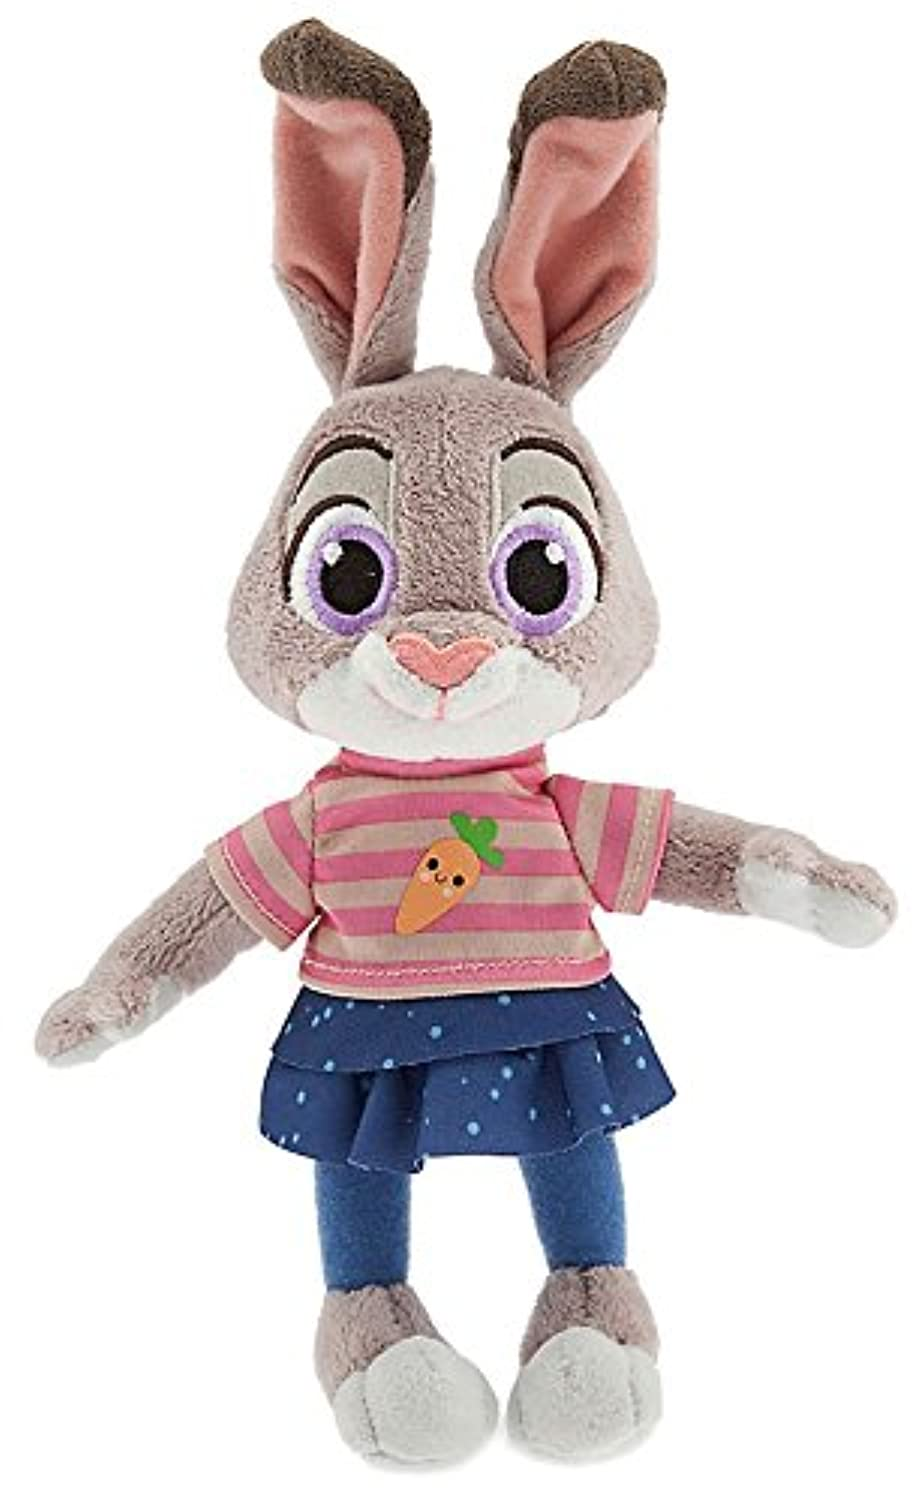 Disney Zootopia Judy Hopps Exclusive 9